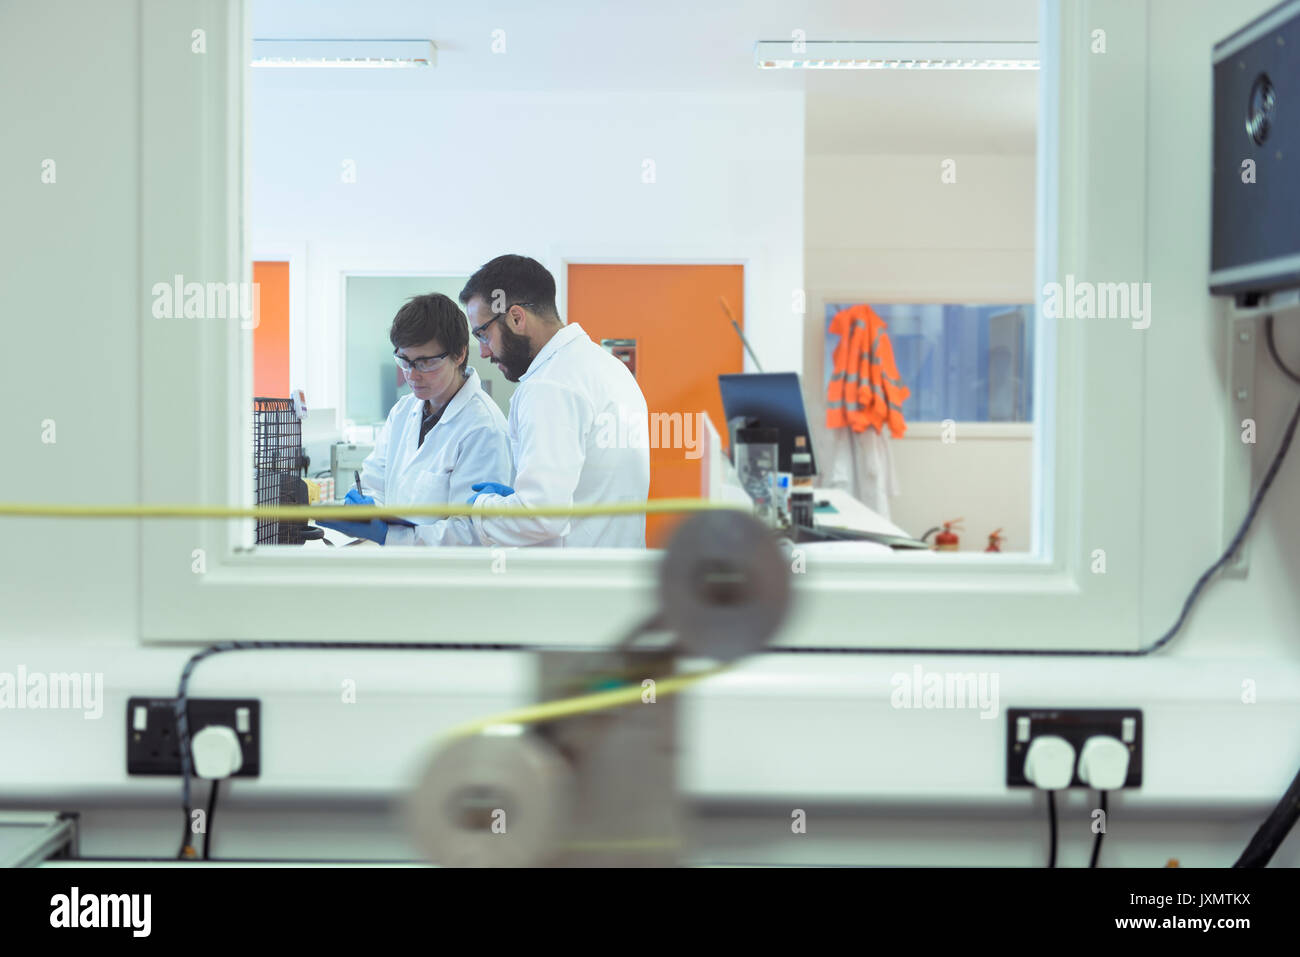 Scientist working in electrical cable laboratory - Stock Image